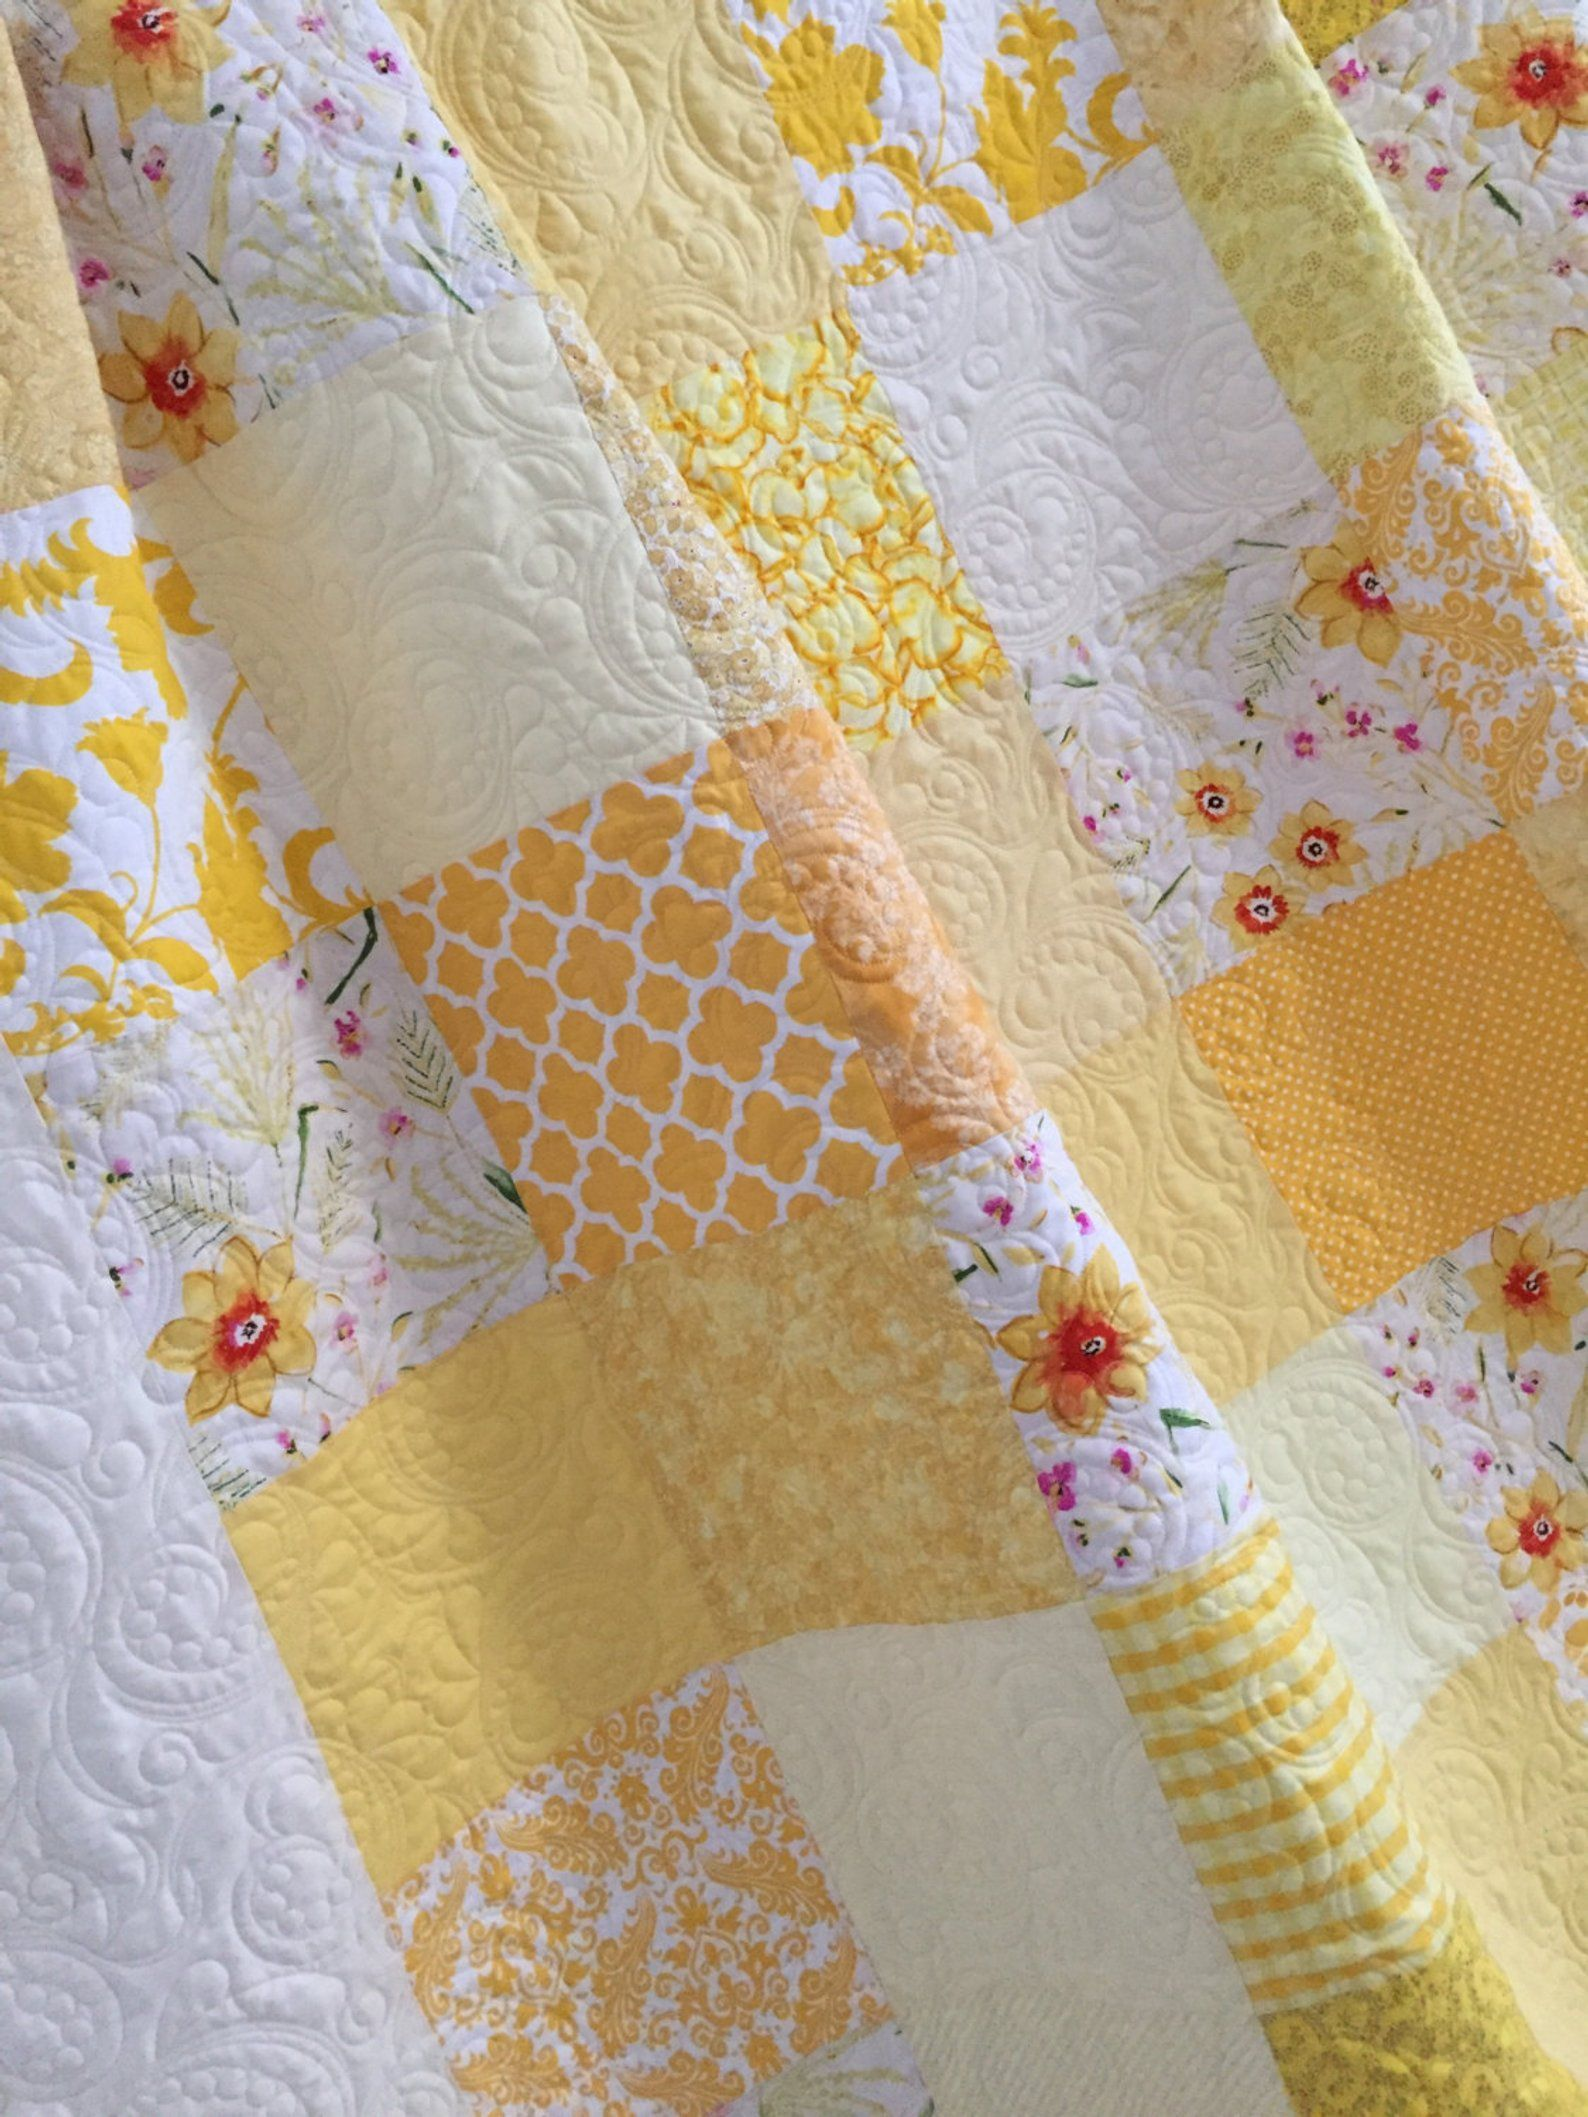 King Patchwork Quilt With Floral Fabrics King Size Custom Wedding Heirloom Bed Quilt Patchwork Quilts Quilt Bedding Baby Girl Quilts